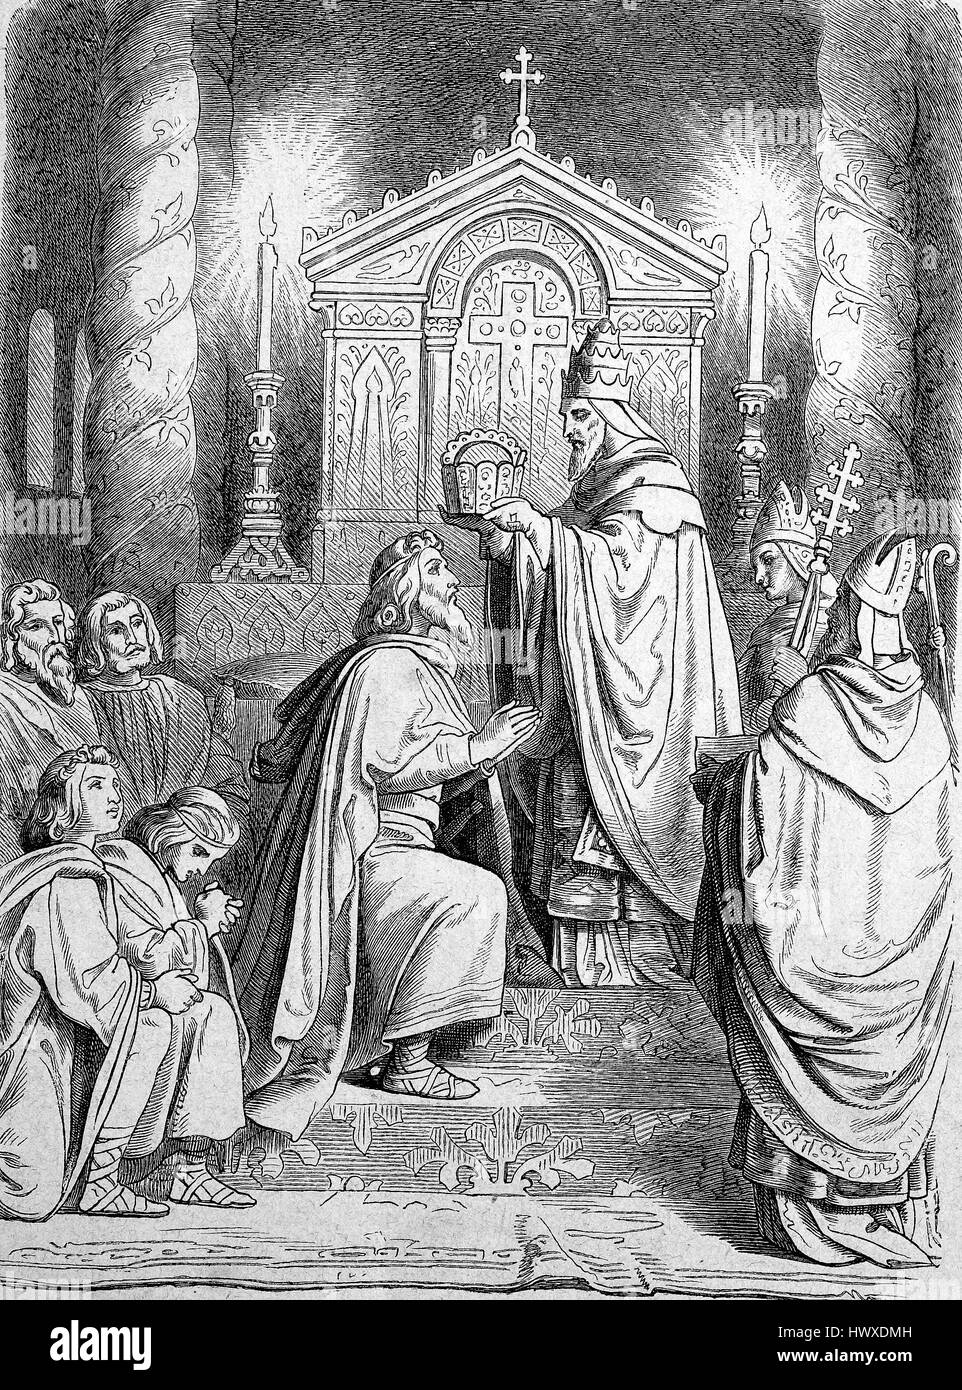 Charlemagne or Charles the Great, numbered Charles I, receives on the first Christmas Day in 800 by Pope Leo III. - Stock Image